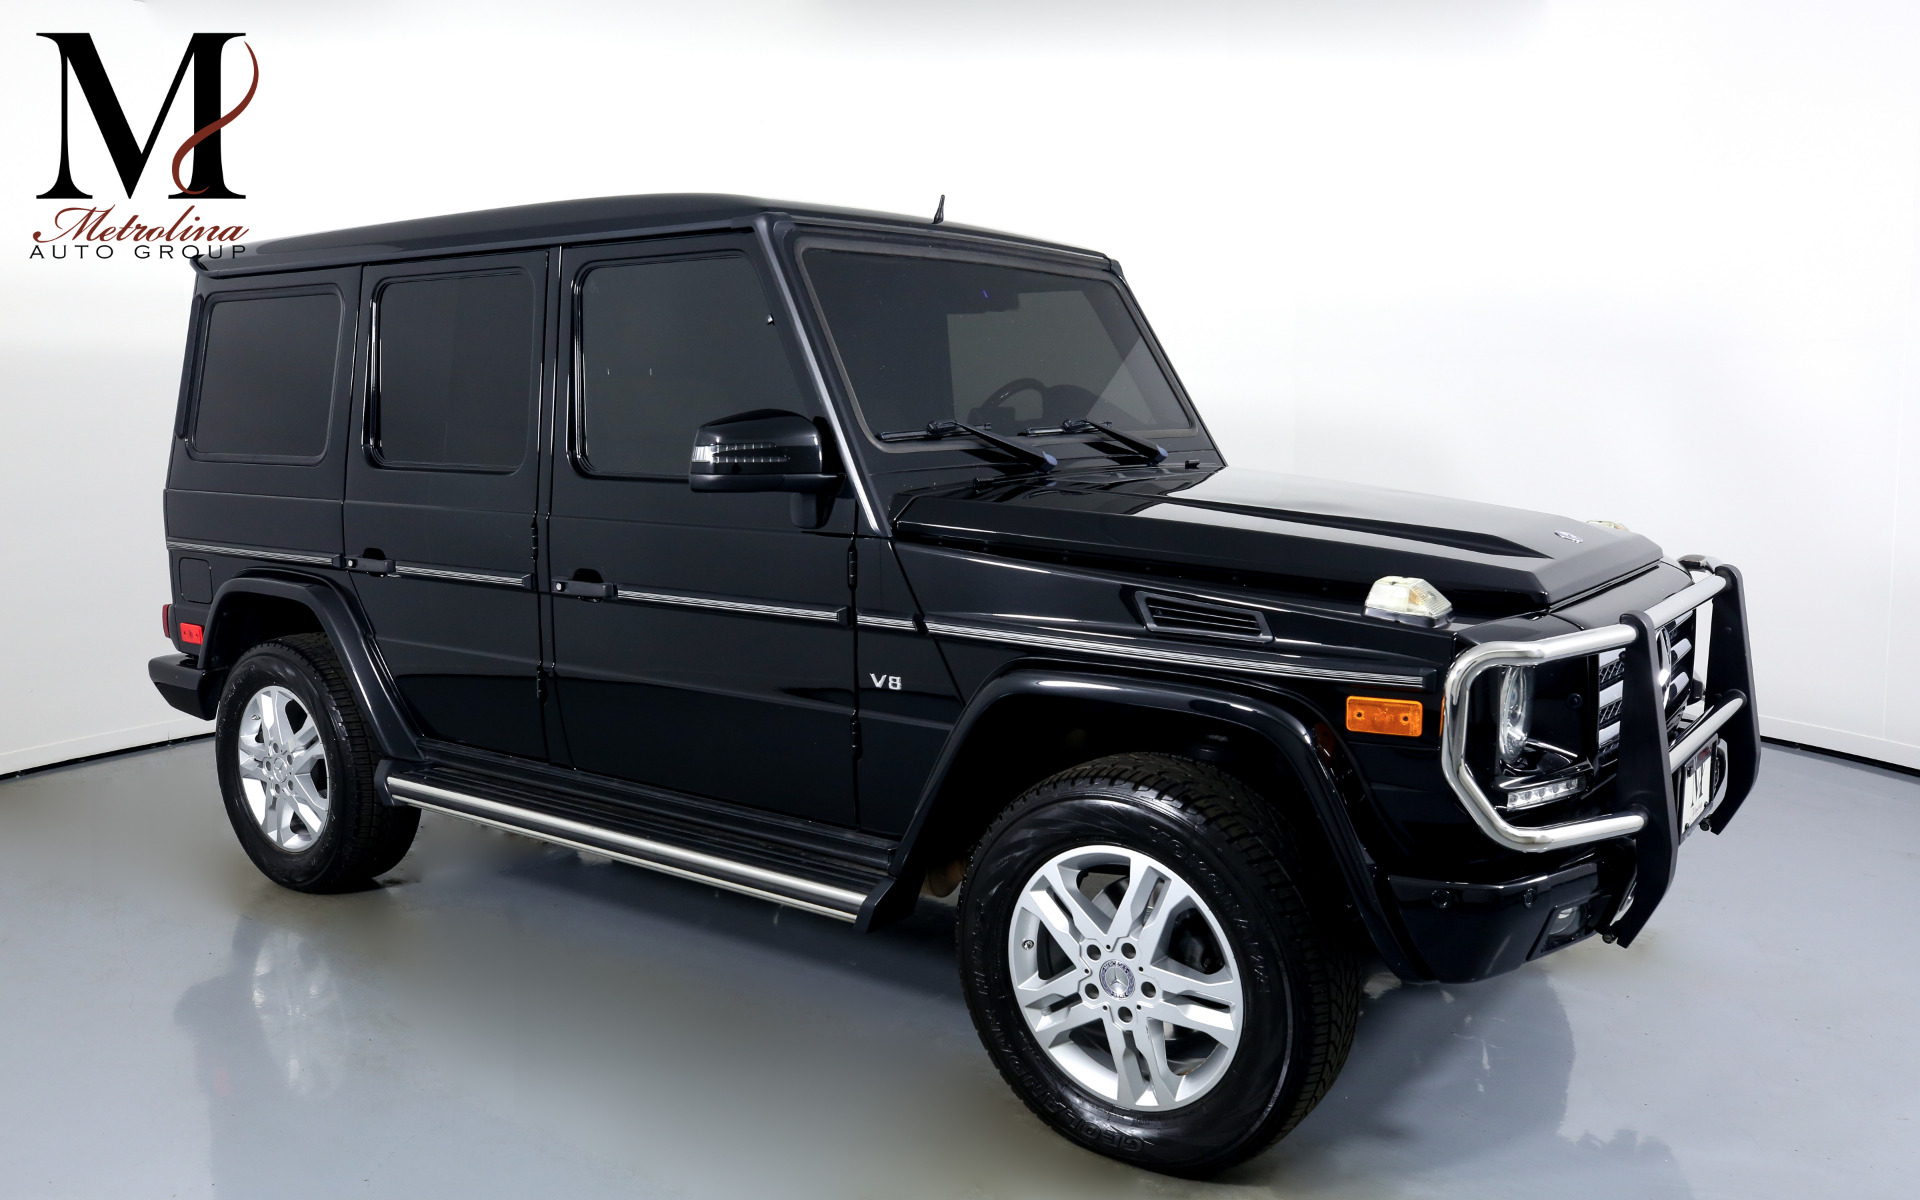 Used 2013 Mercedes-Benz G-Class G 550 for sale $64,996 at Metrolina Auto Group in Charlotte NC 28217 - 1